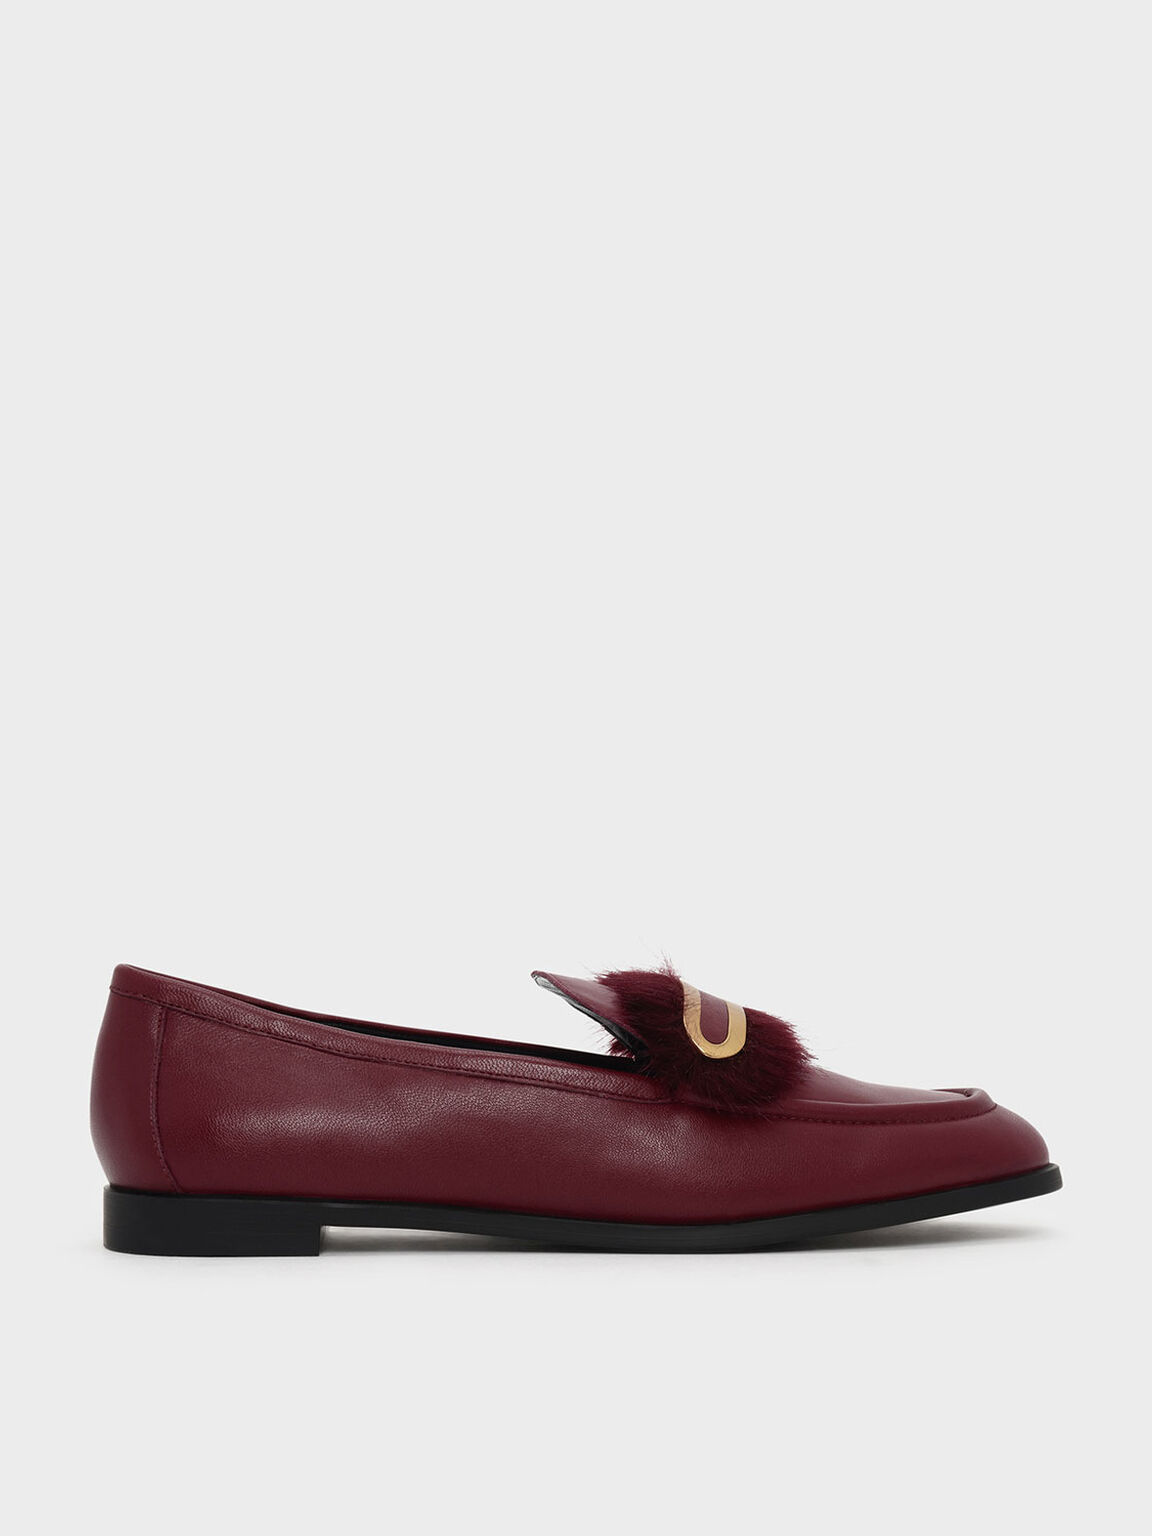 Furry Detail Leather Penny Loafers, Red, hi-res